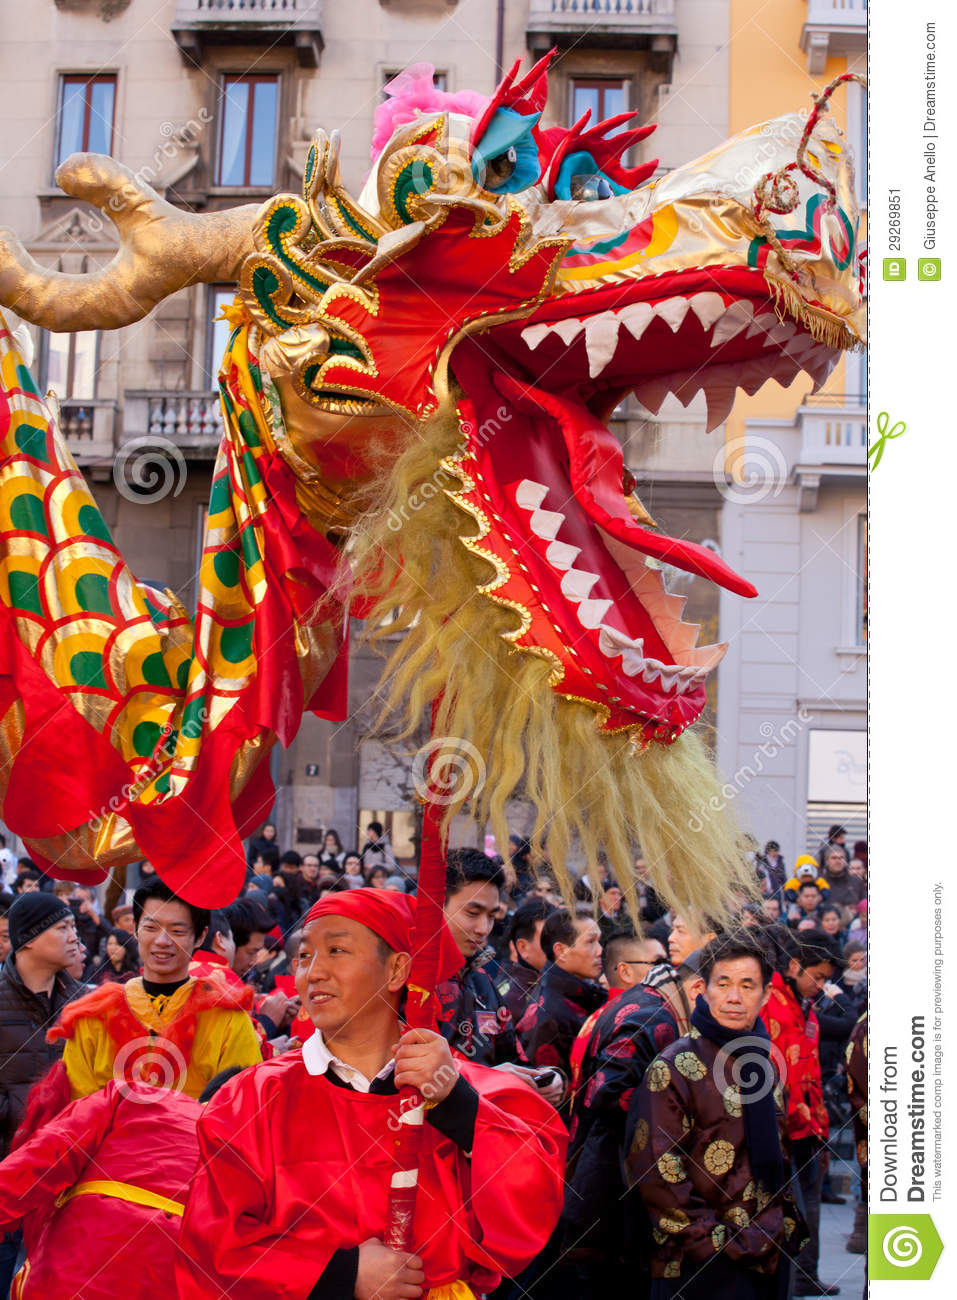 Chinese new year parade in milan editorial photo image for Chinese new years parade